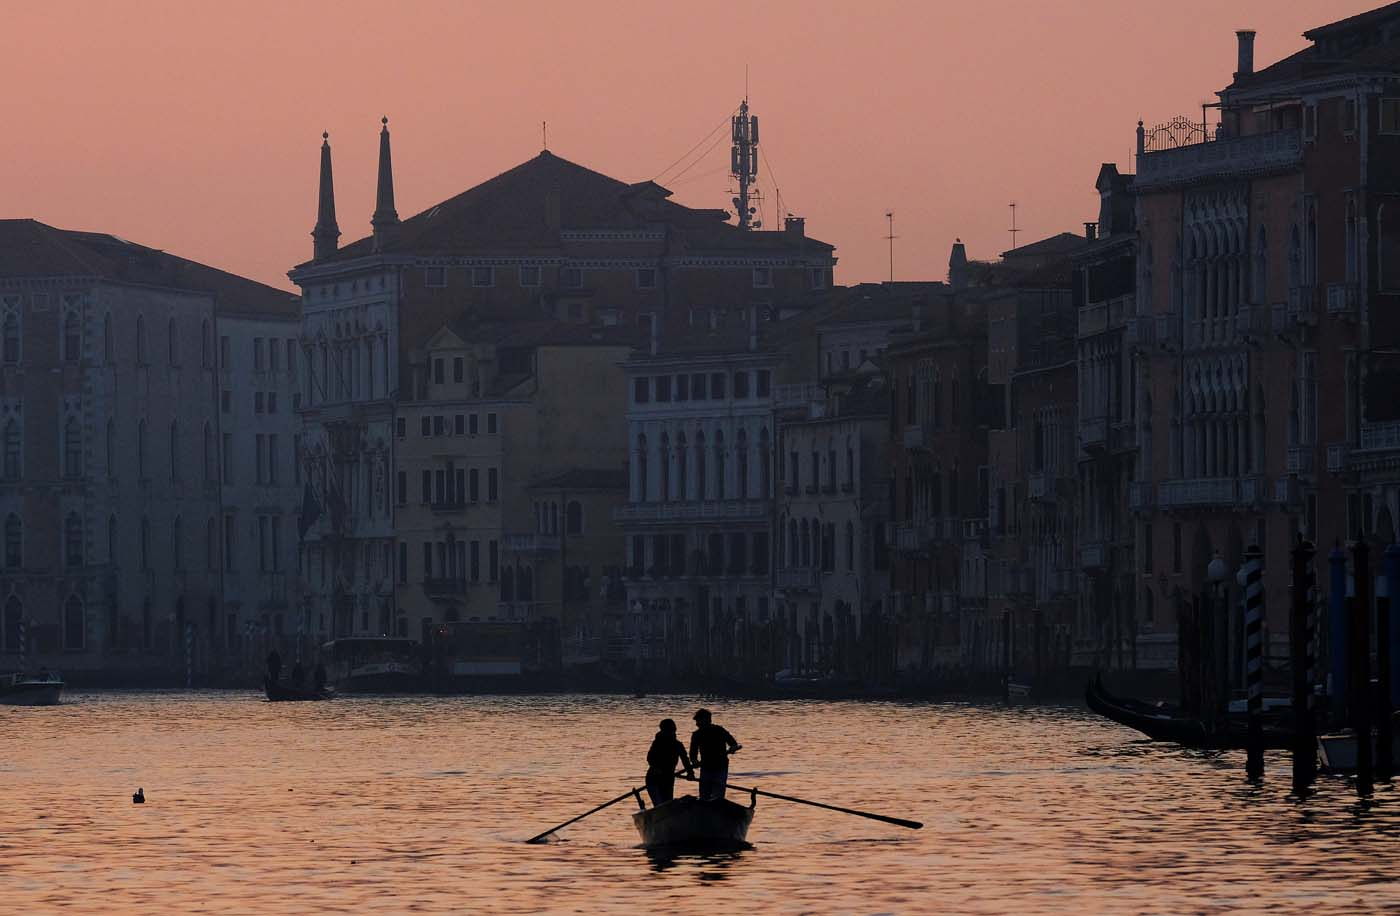 People row on Grand Canal in Venice, Italy January 28, 2018. REUTERS/Manuel Silvestri